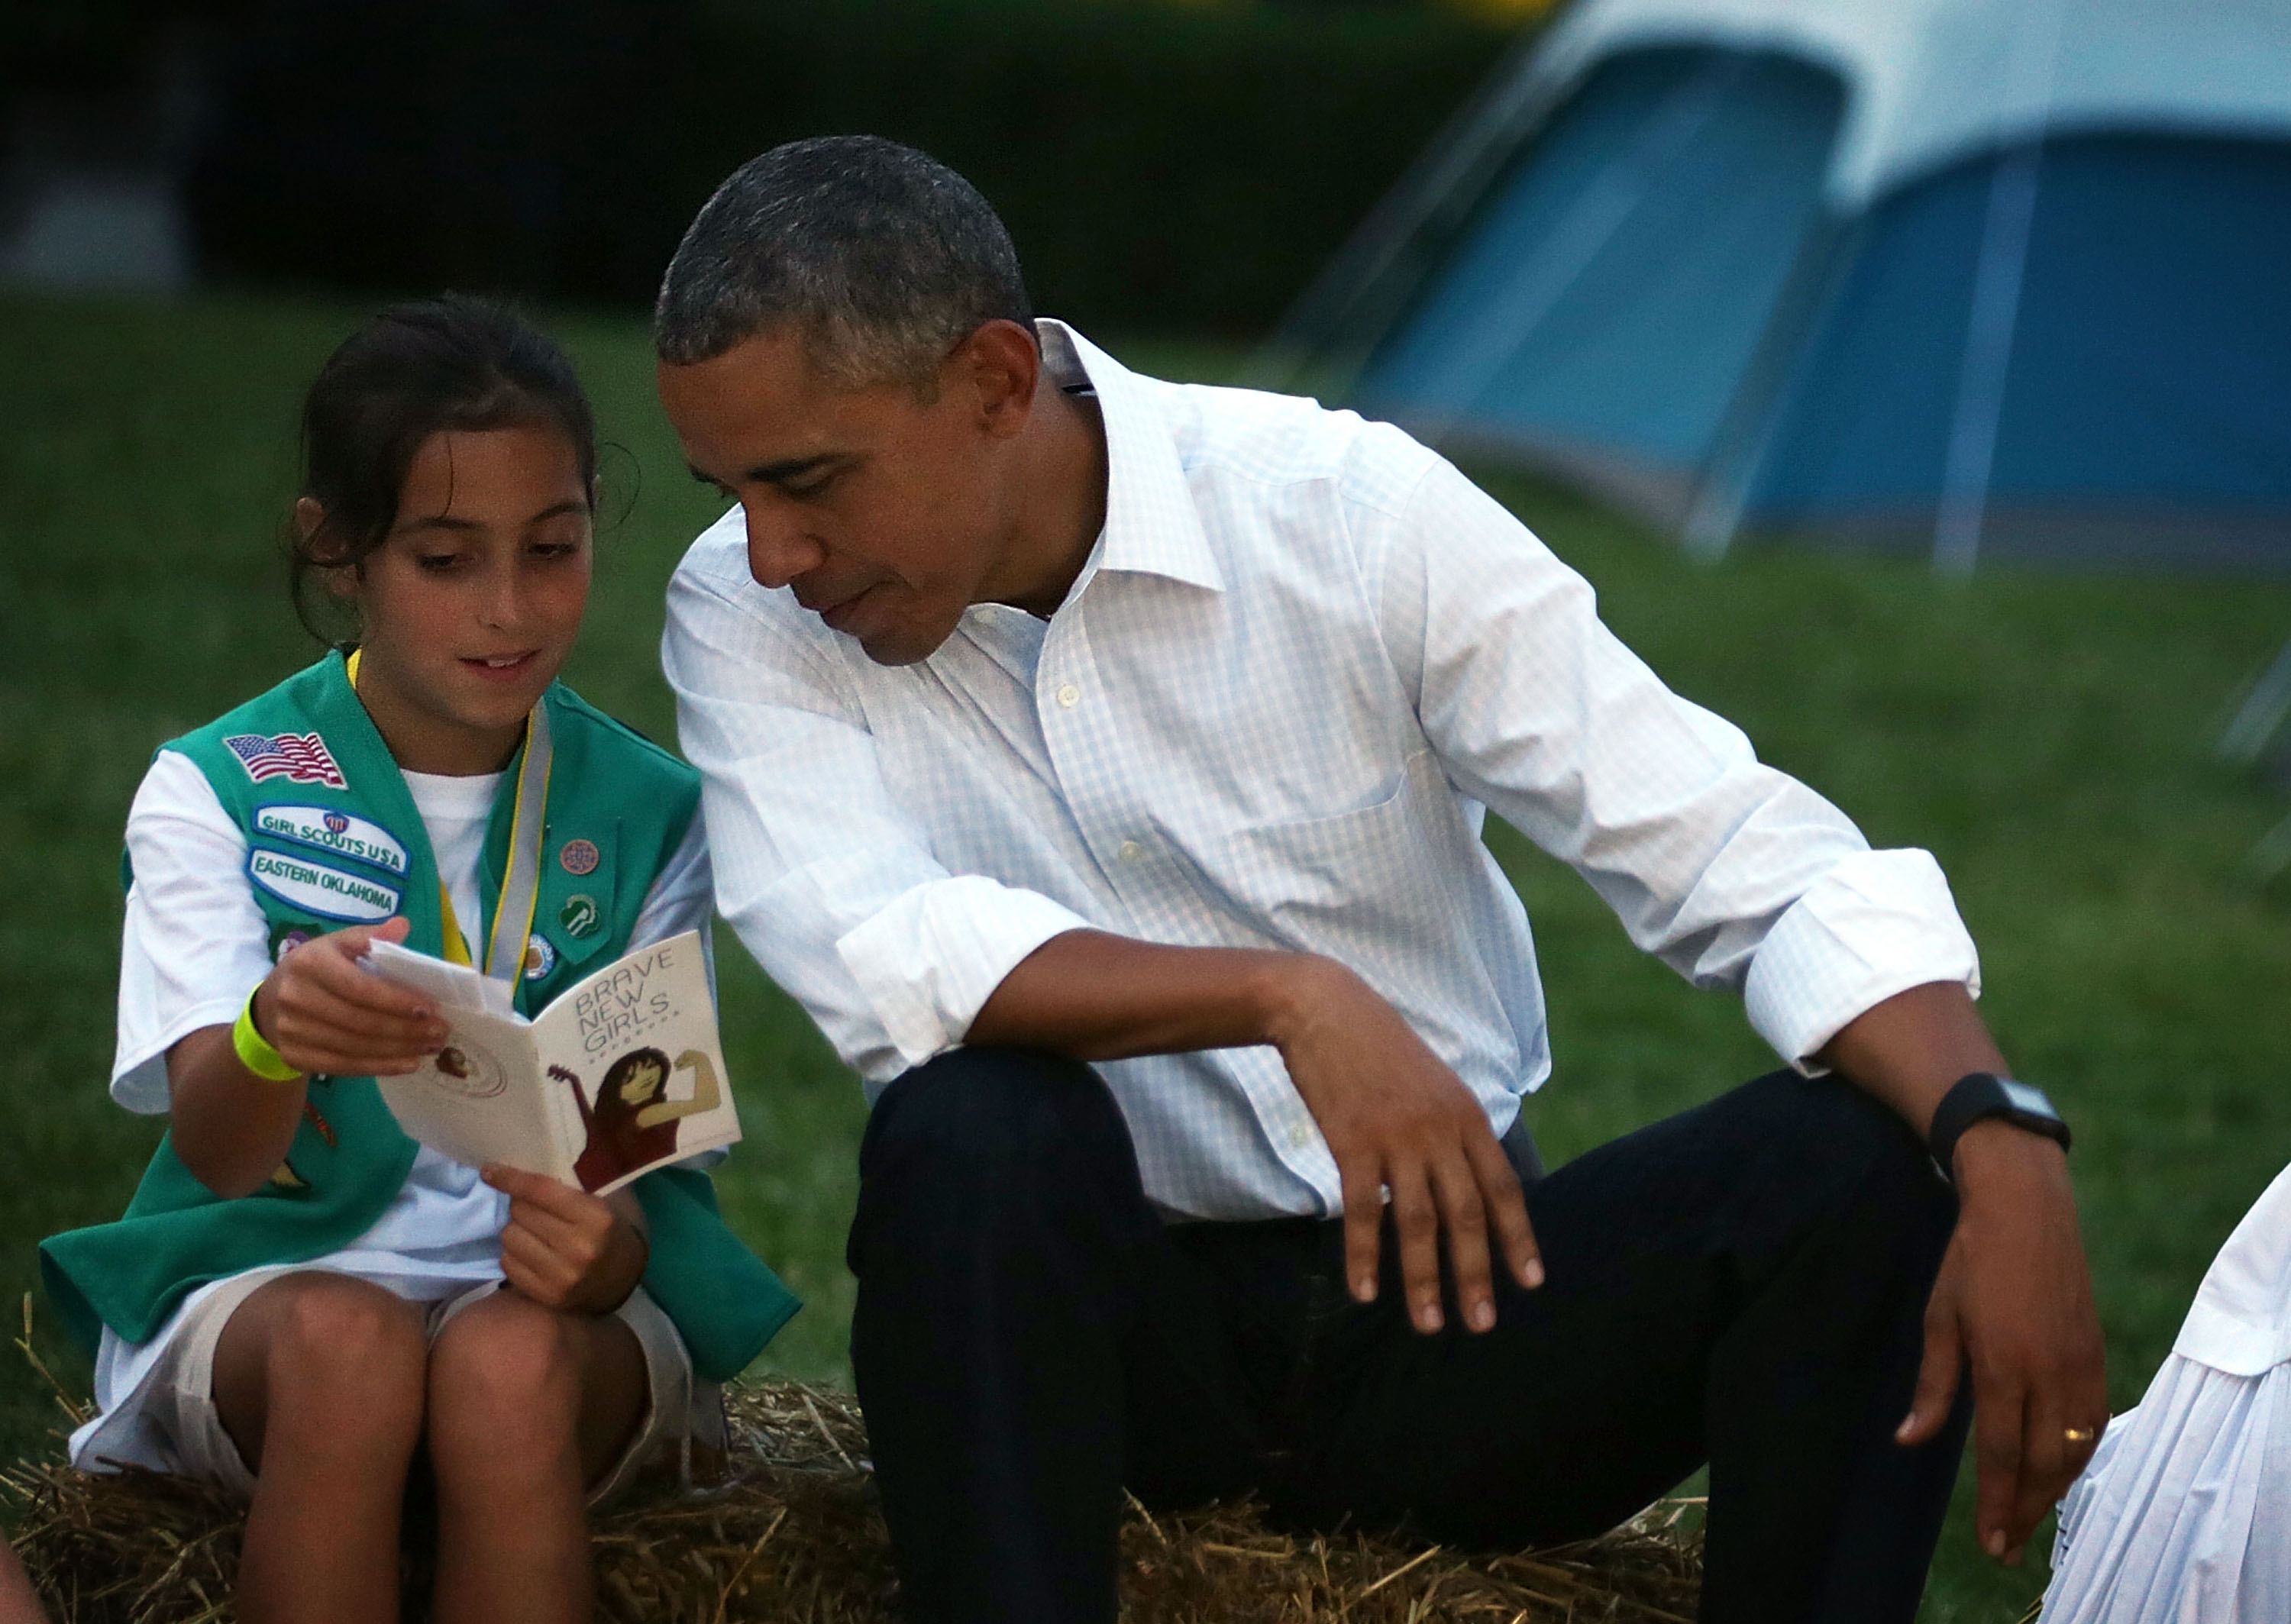 Barack Obama's 2019 summer reading list celebrates a diverse group of authors